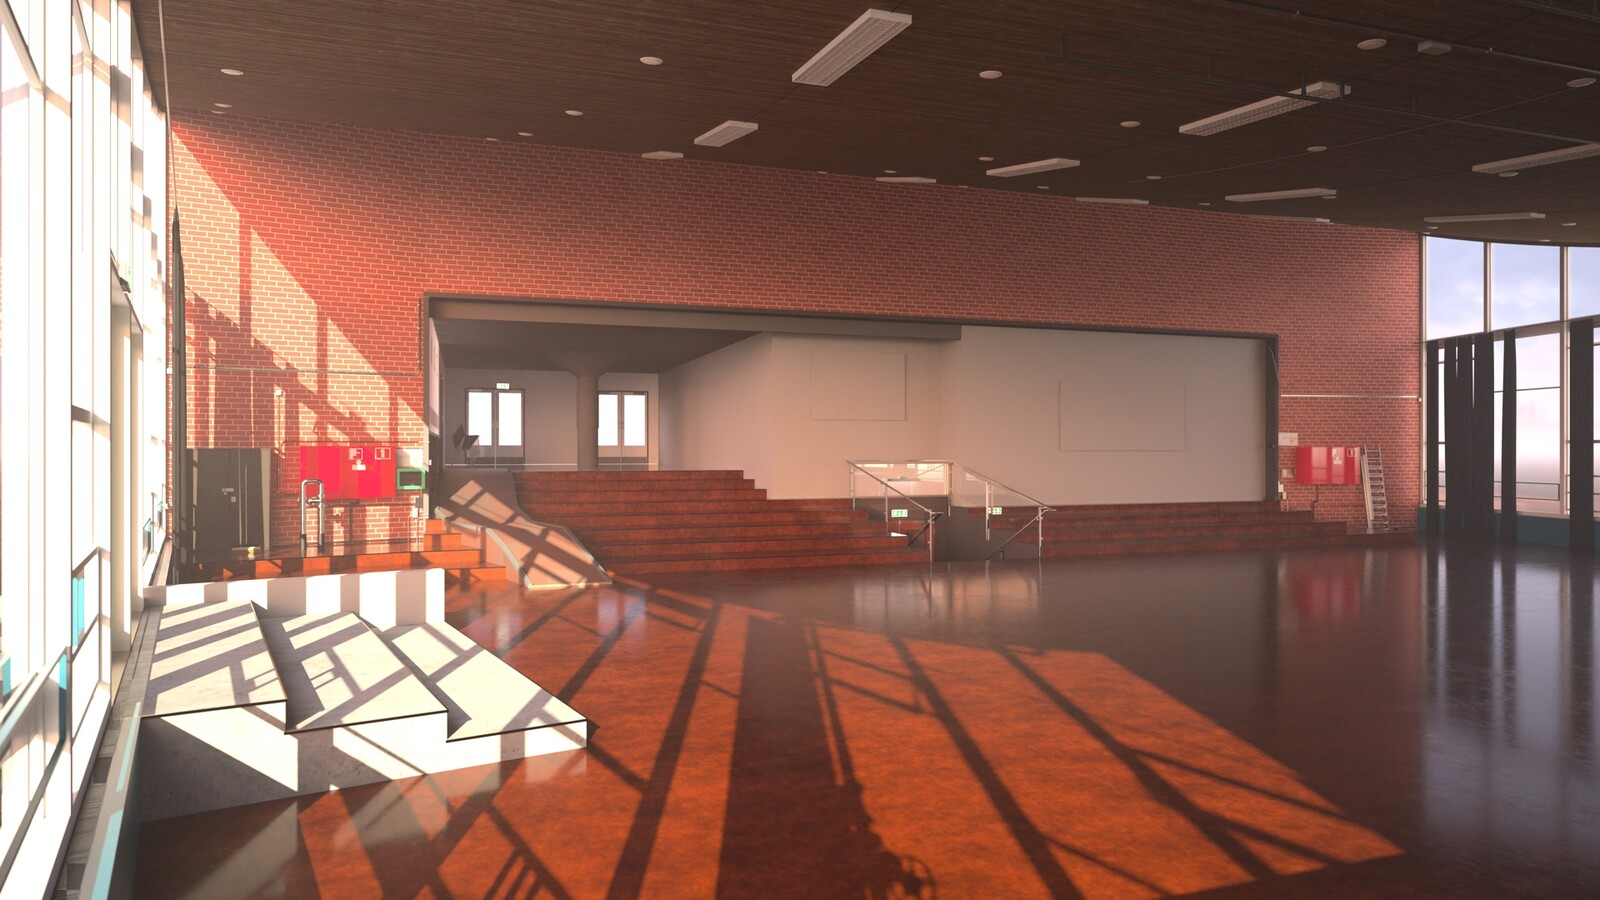 SketchUp 2021 + Thea Render V3 Broedplaats LELY (The Lely Incubator) Auditorium Amsterdam Showroom Final-Scene 13 20m33s HD1080 1536sp